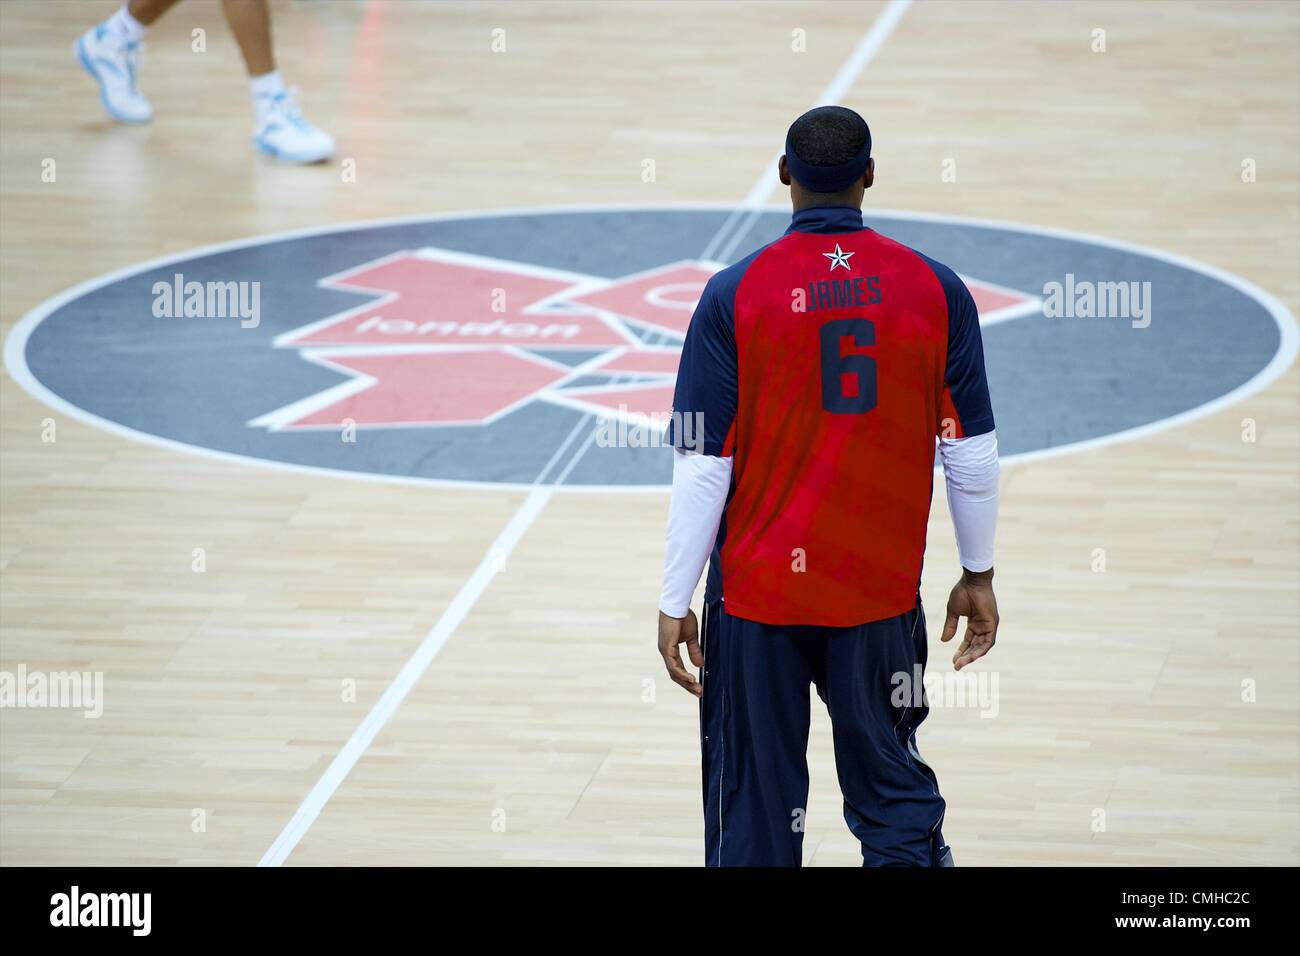 Aug. 10, 2012 - London, England, United Kingdom - LEBRON JAMES and other members of the 'Dream Team' warm - Stock Image